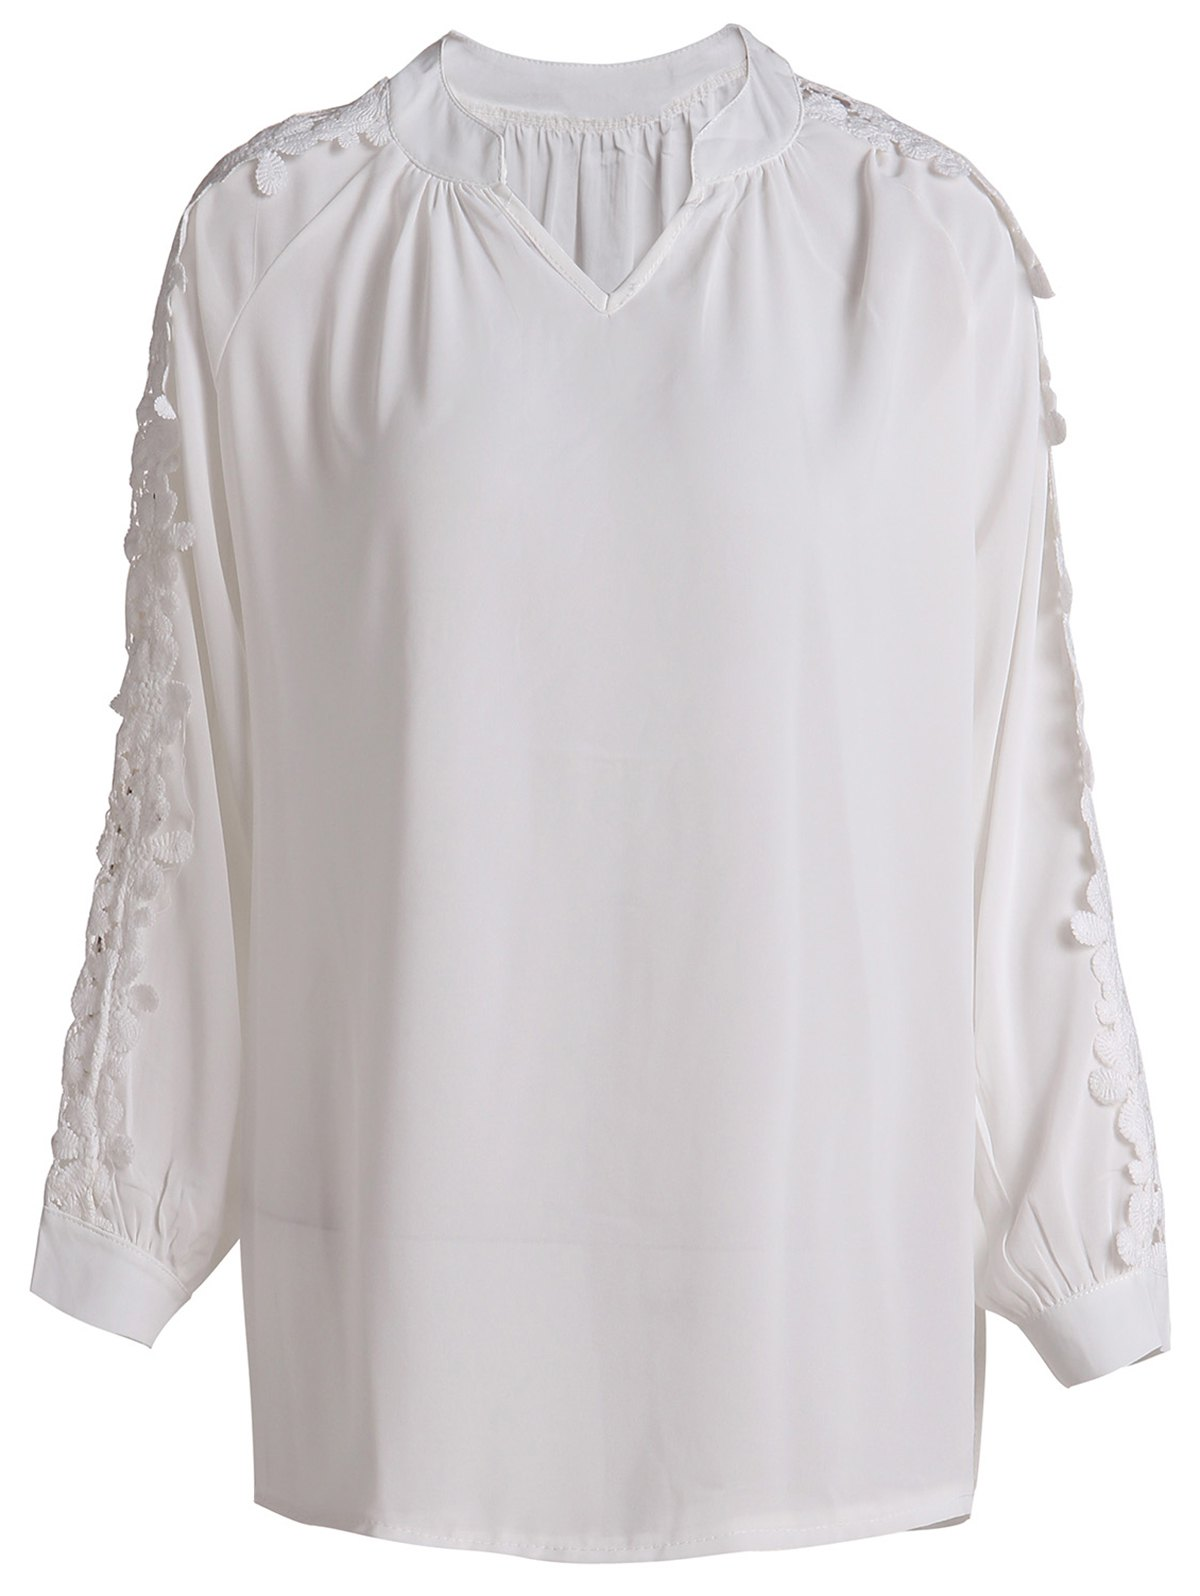 Refreshing White V-Neck Hollow Long Sleeve Blouse For Women - WHITE L